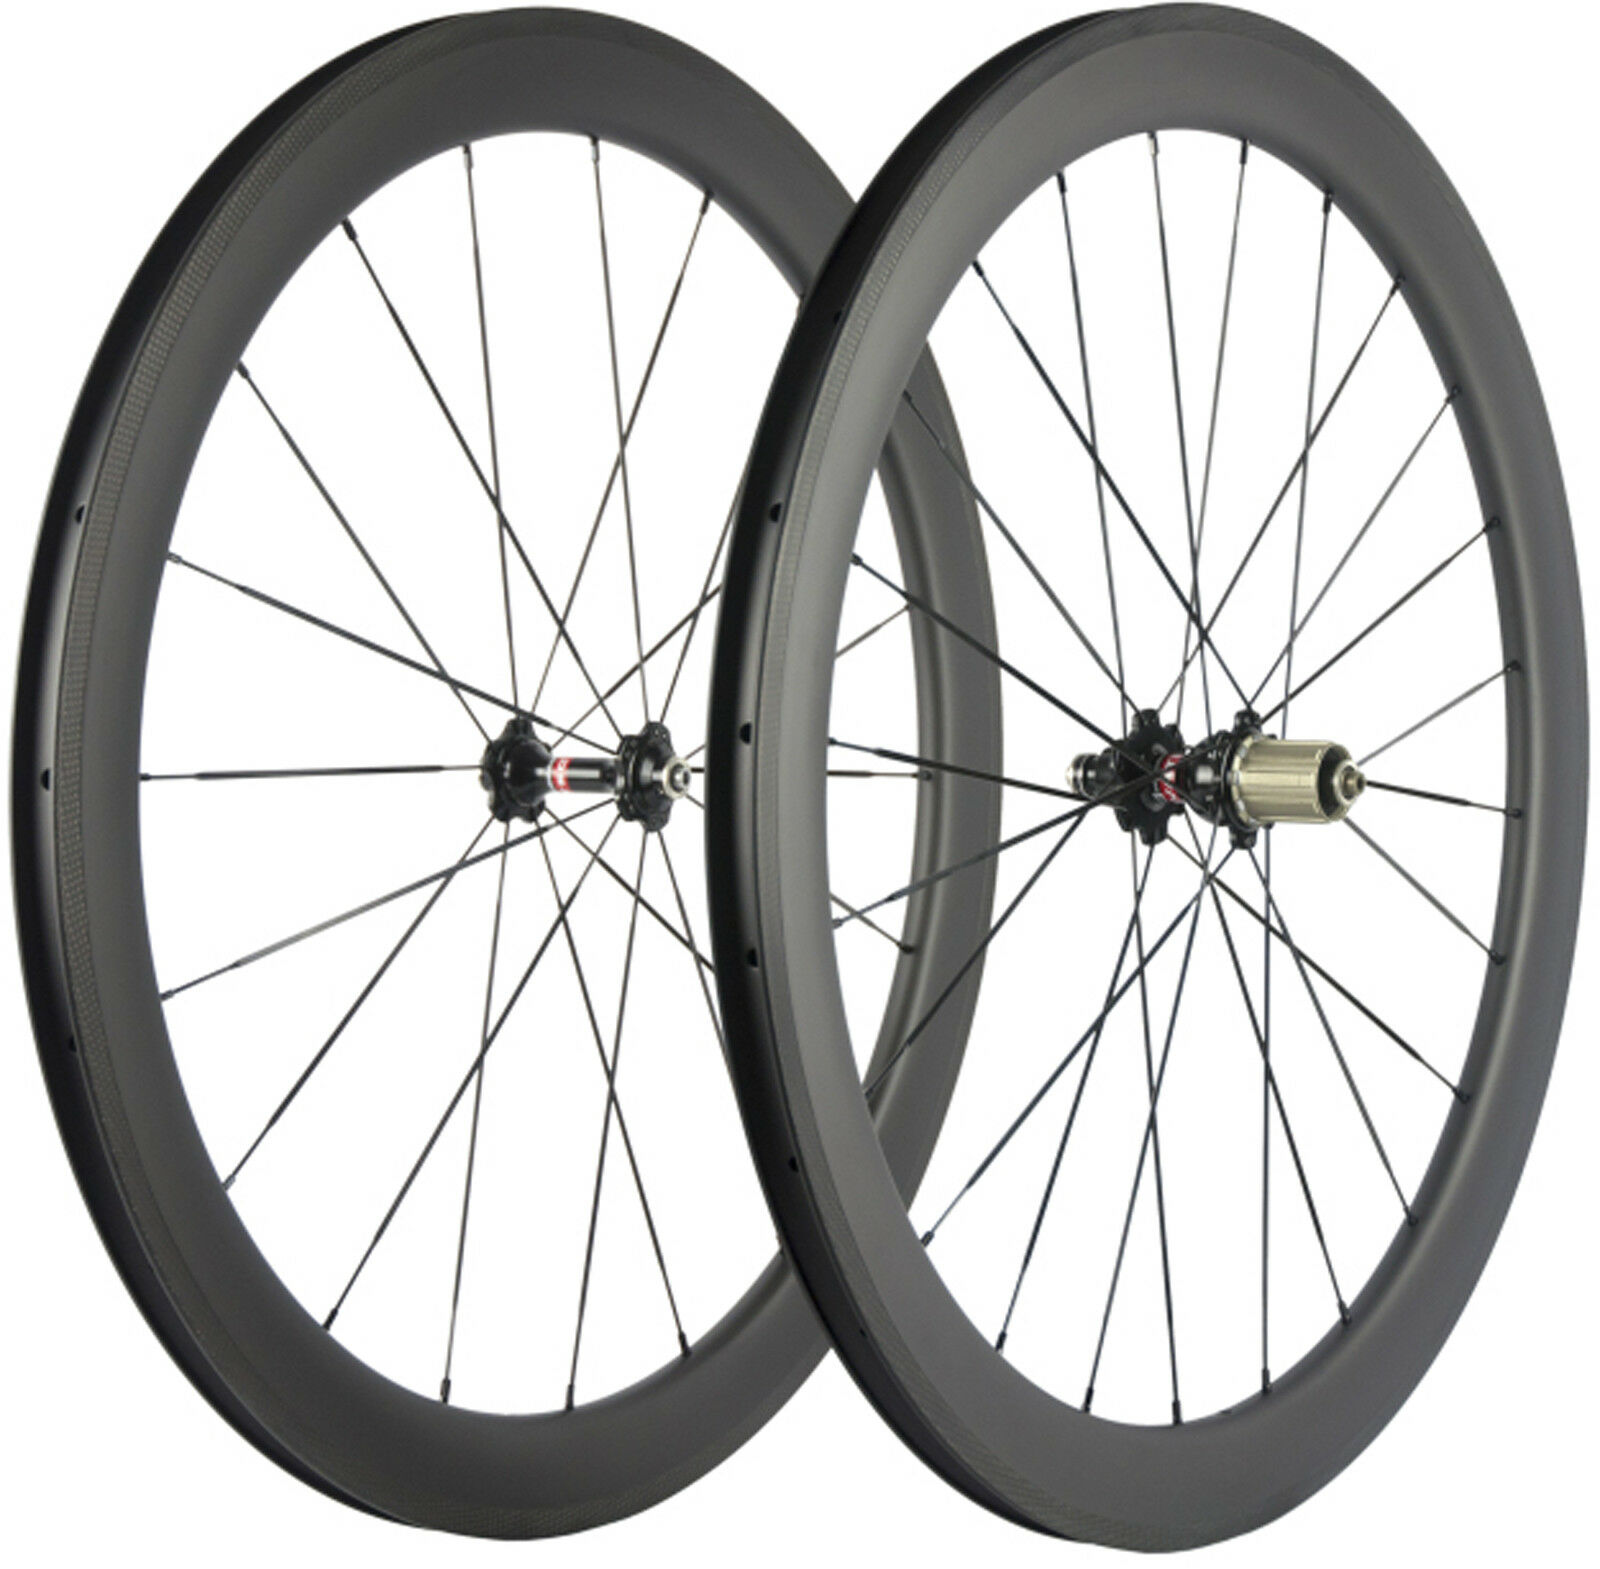 50mm Carbon Wheels Road  Bike Novatec 271 Hub Bicycle Wheelset UD Matte Glossy  cheap sale